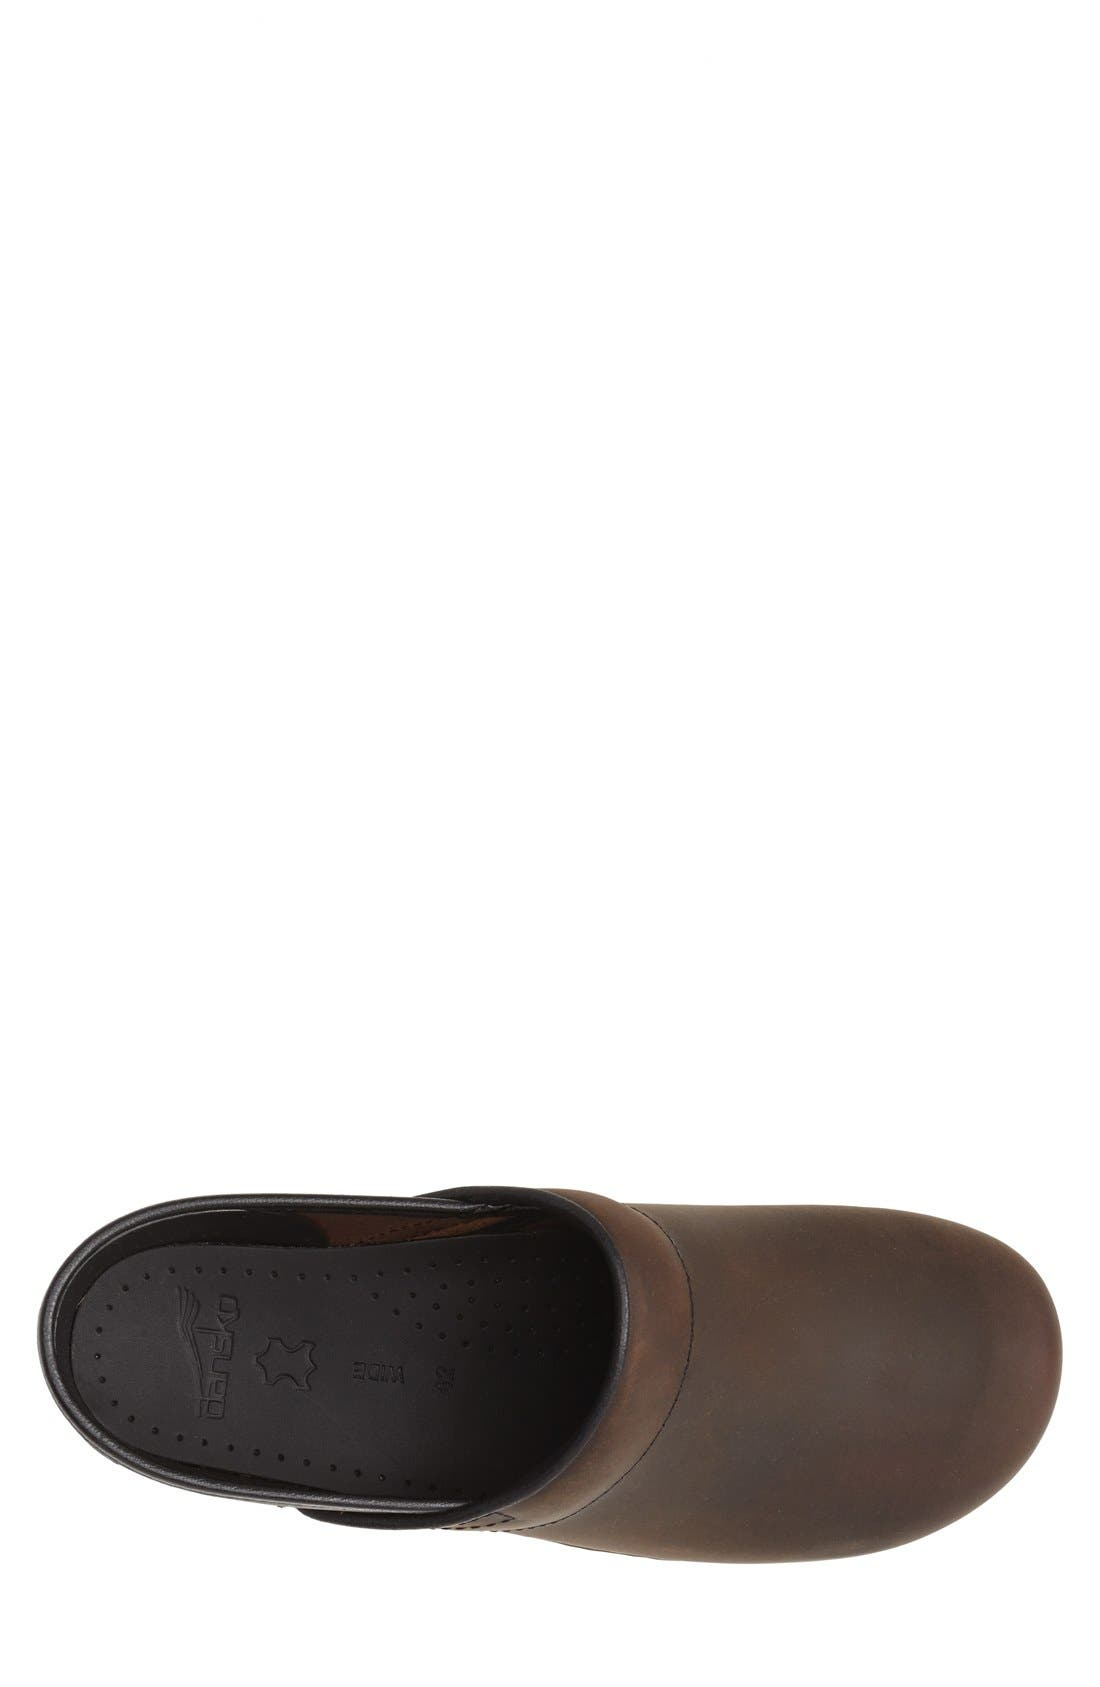 'Pro' Clog,                             Alternate thumbnail 3, color,                             Antique Brown Oiled